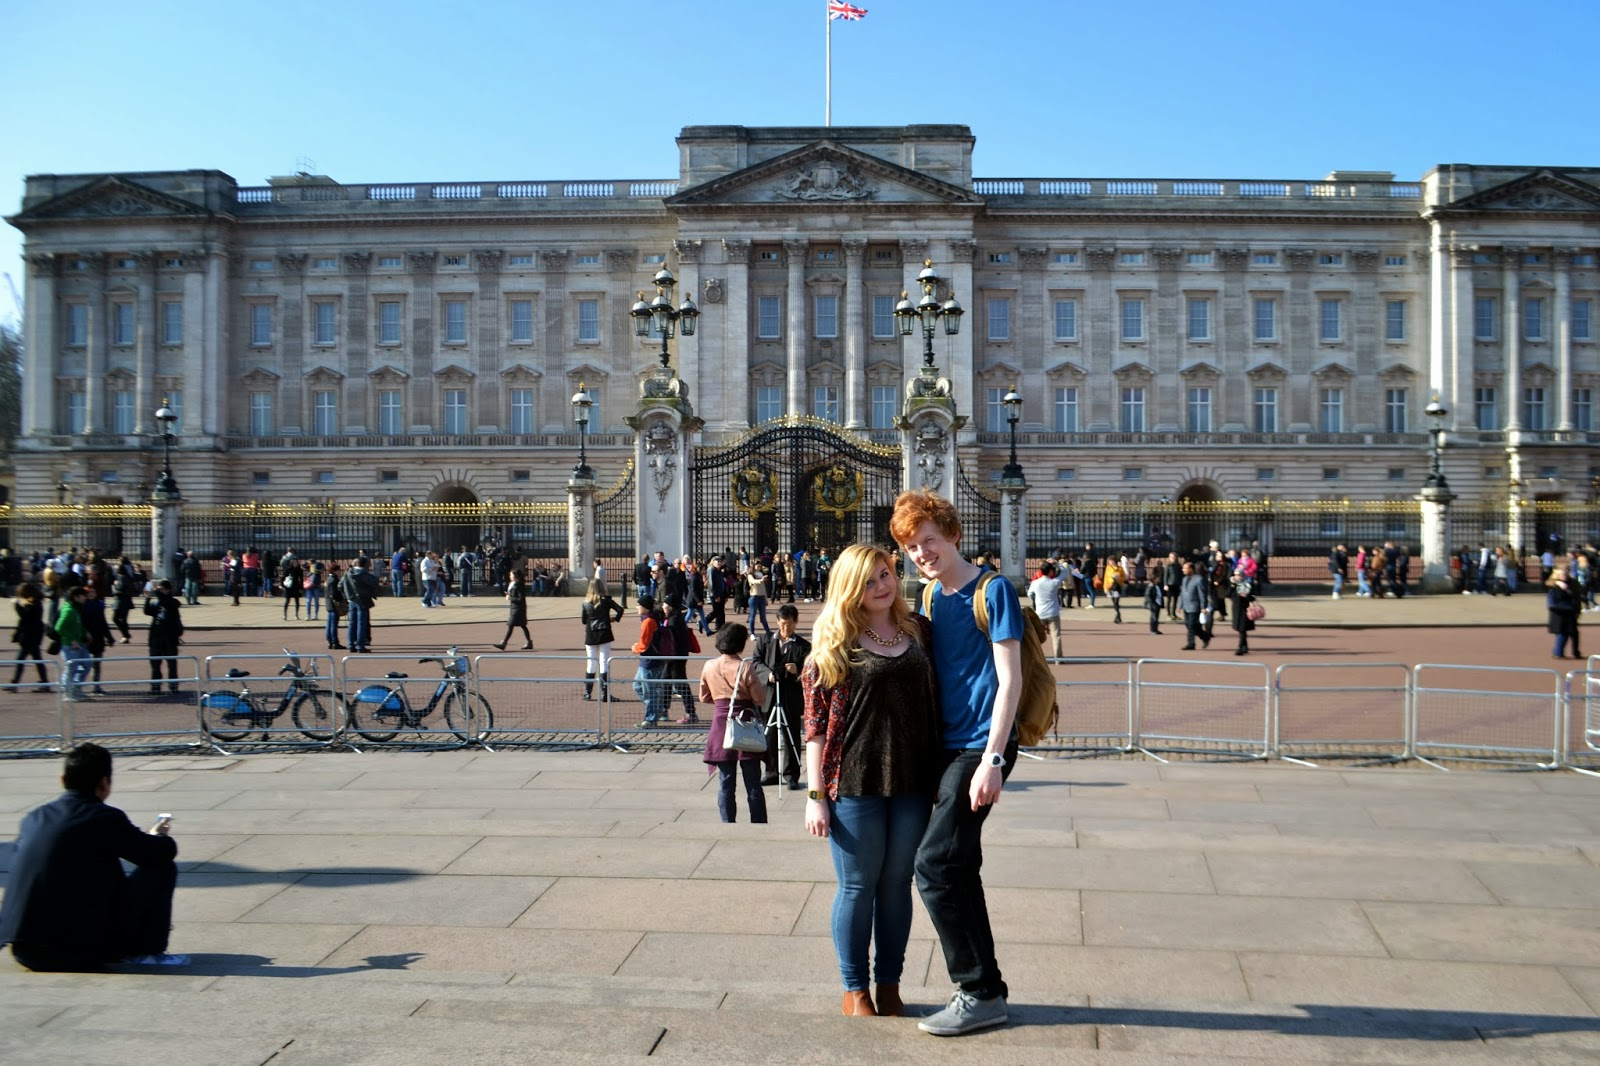 Me and Sean standing in the foreground with buckingham palace behind us